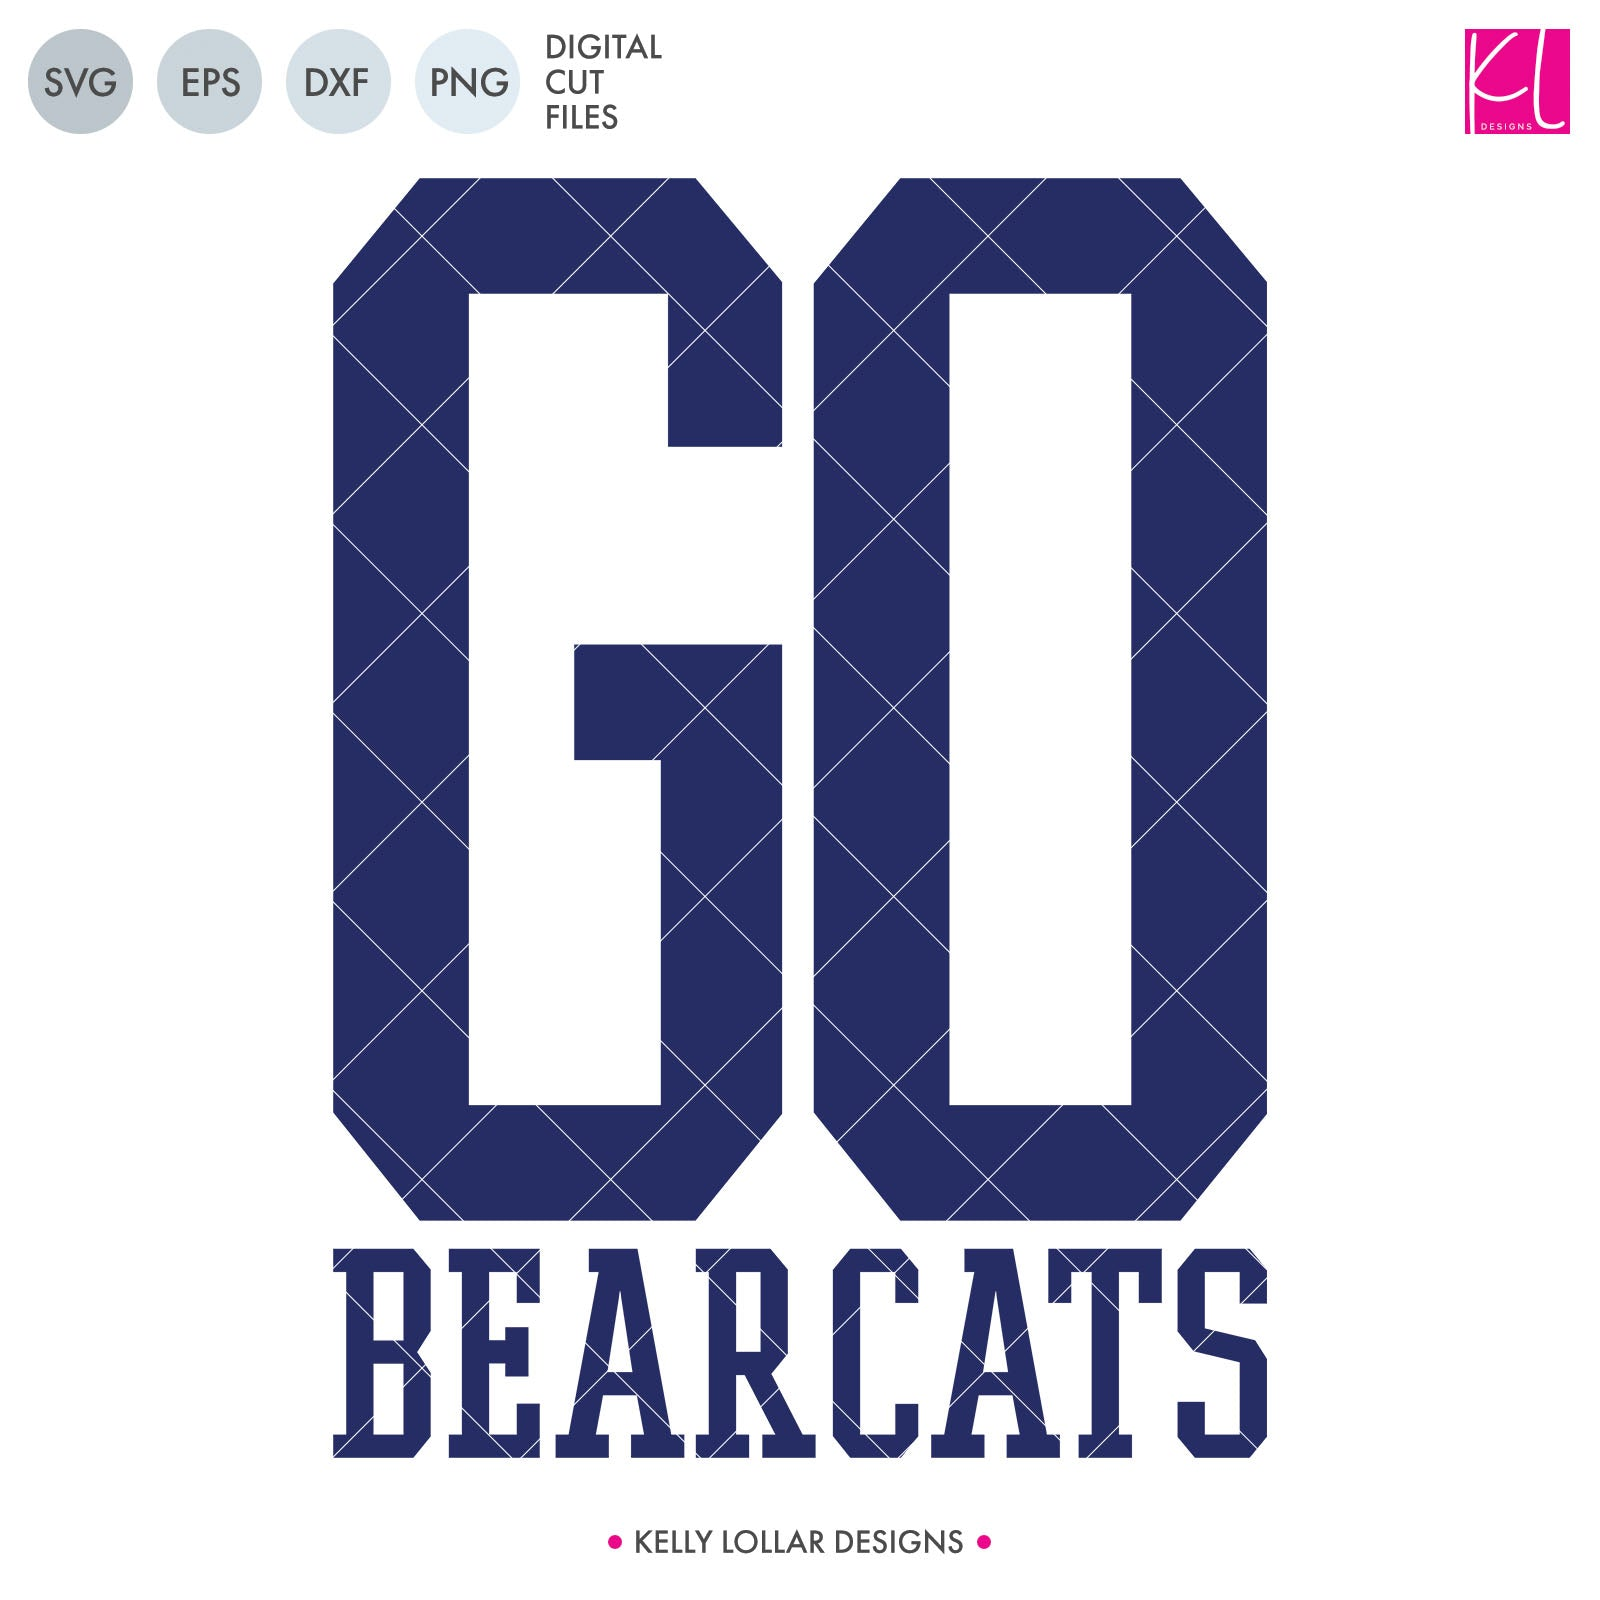 Bearcats Mascot Bundle | SVG DXF EPS PNG Cut Files A perfect bundle for Bearcats school spirit crafters! This set of 28 designs includes everything from cute and girly to unisex so you'll have a little something for everyone. Includes